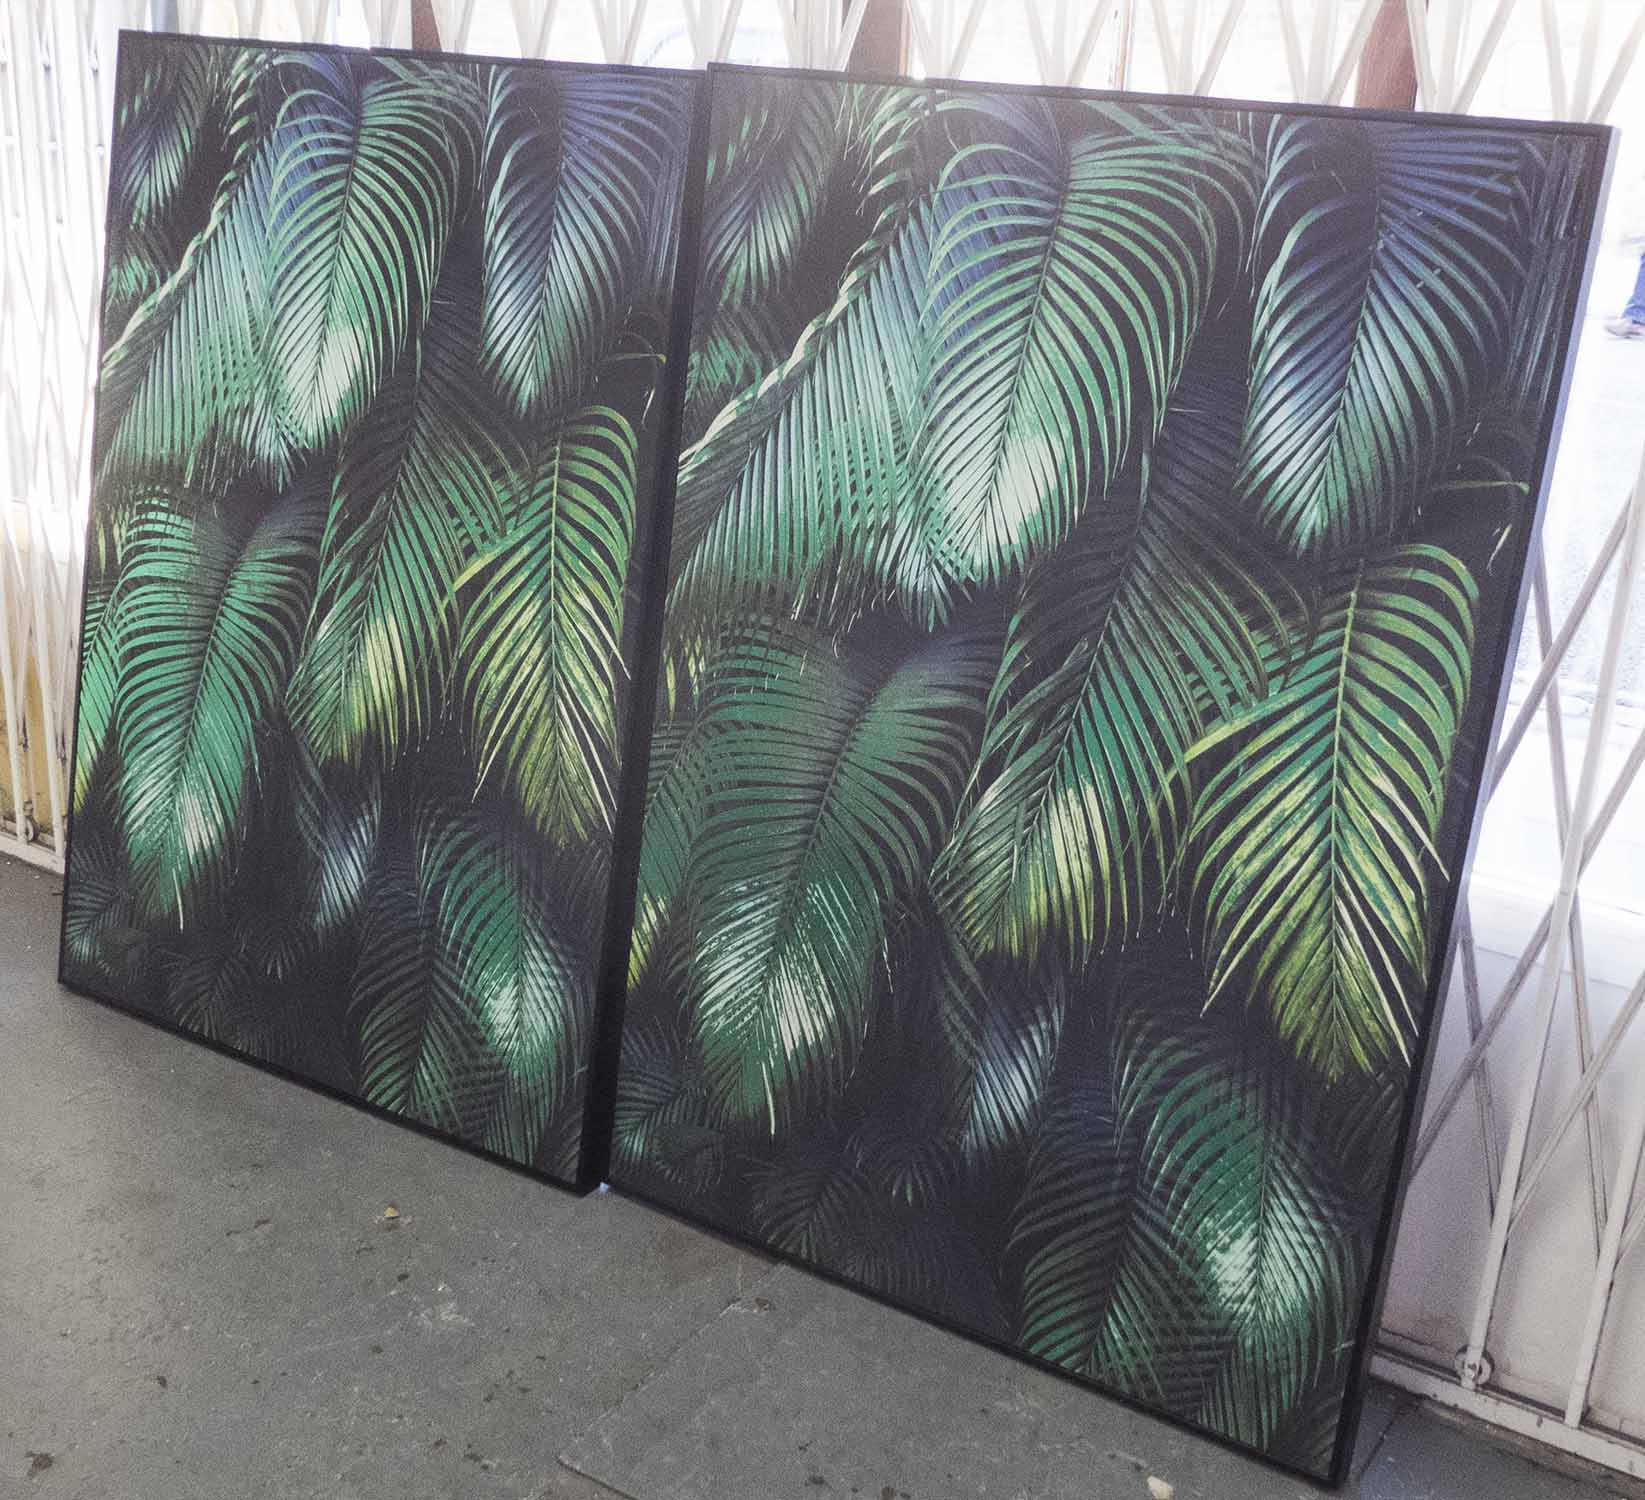 Lot 94 - PALM LEAF DYPTICH, contemporary print, framed, 142cm x 102cm.